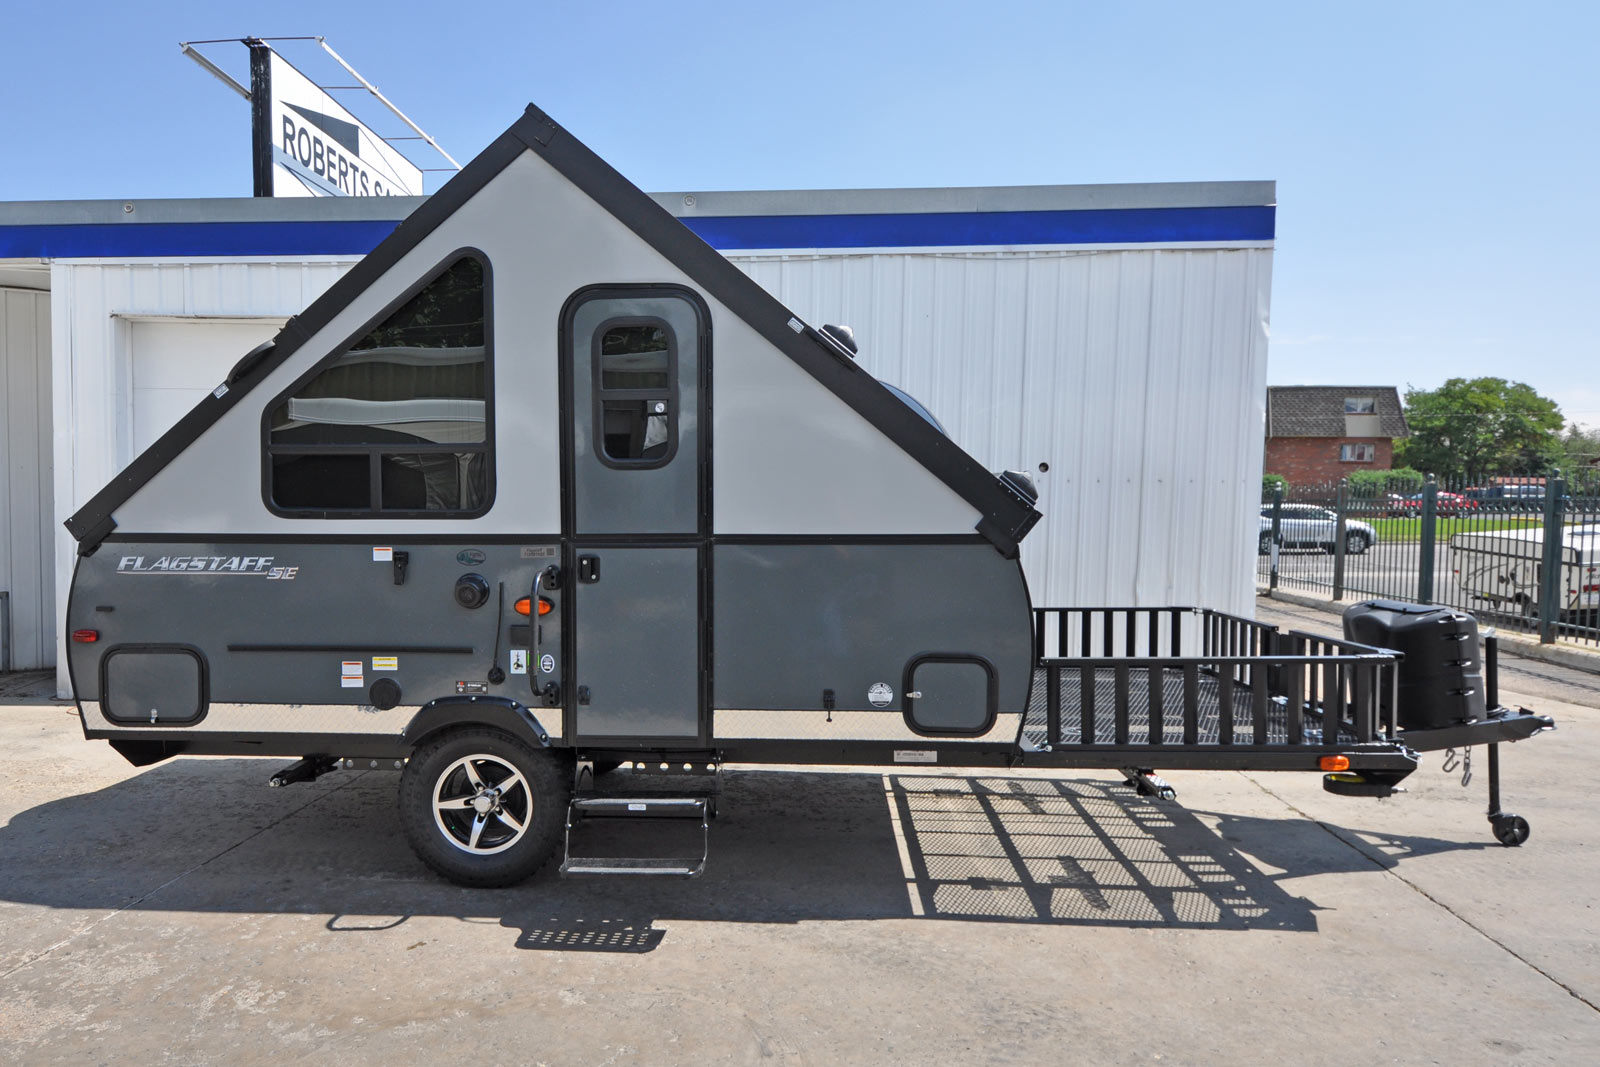 Flagstaff T12rbthse Camping Trailer Roberts Sales